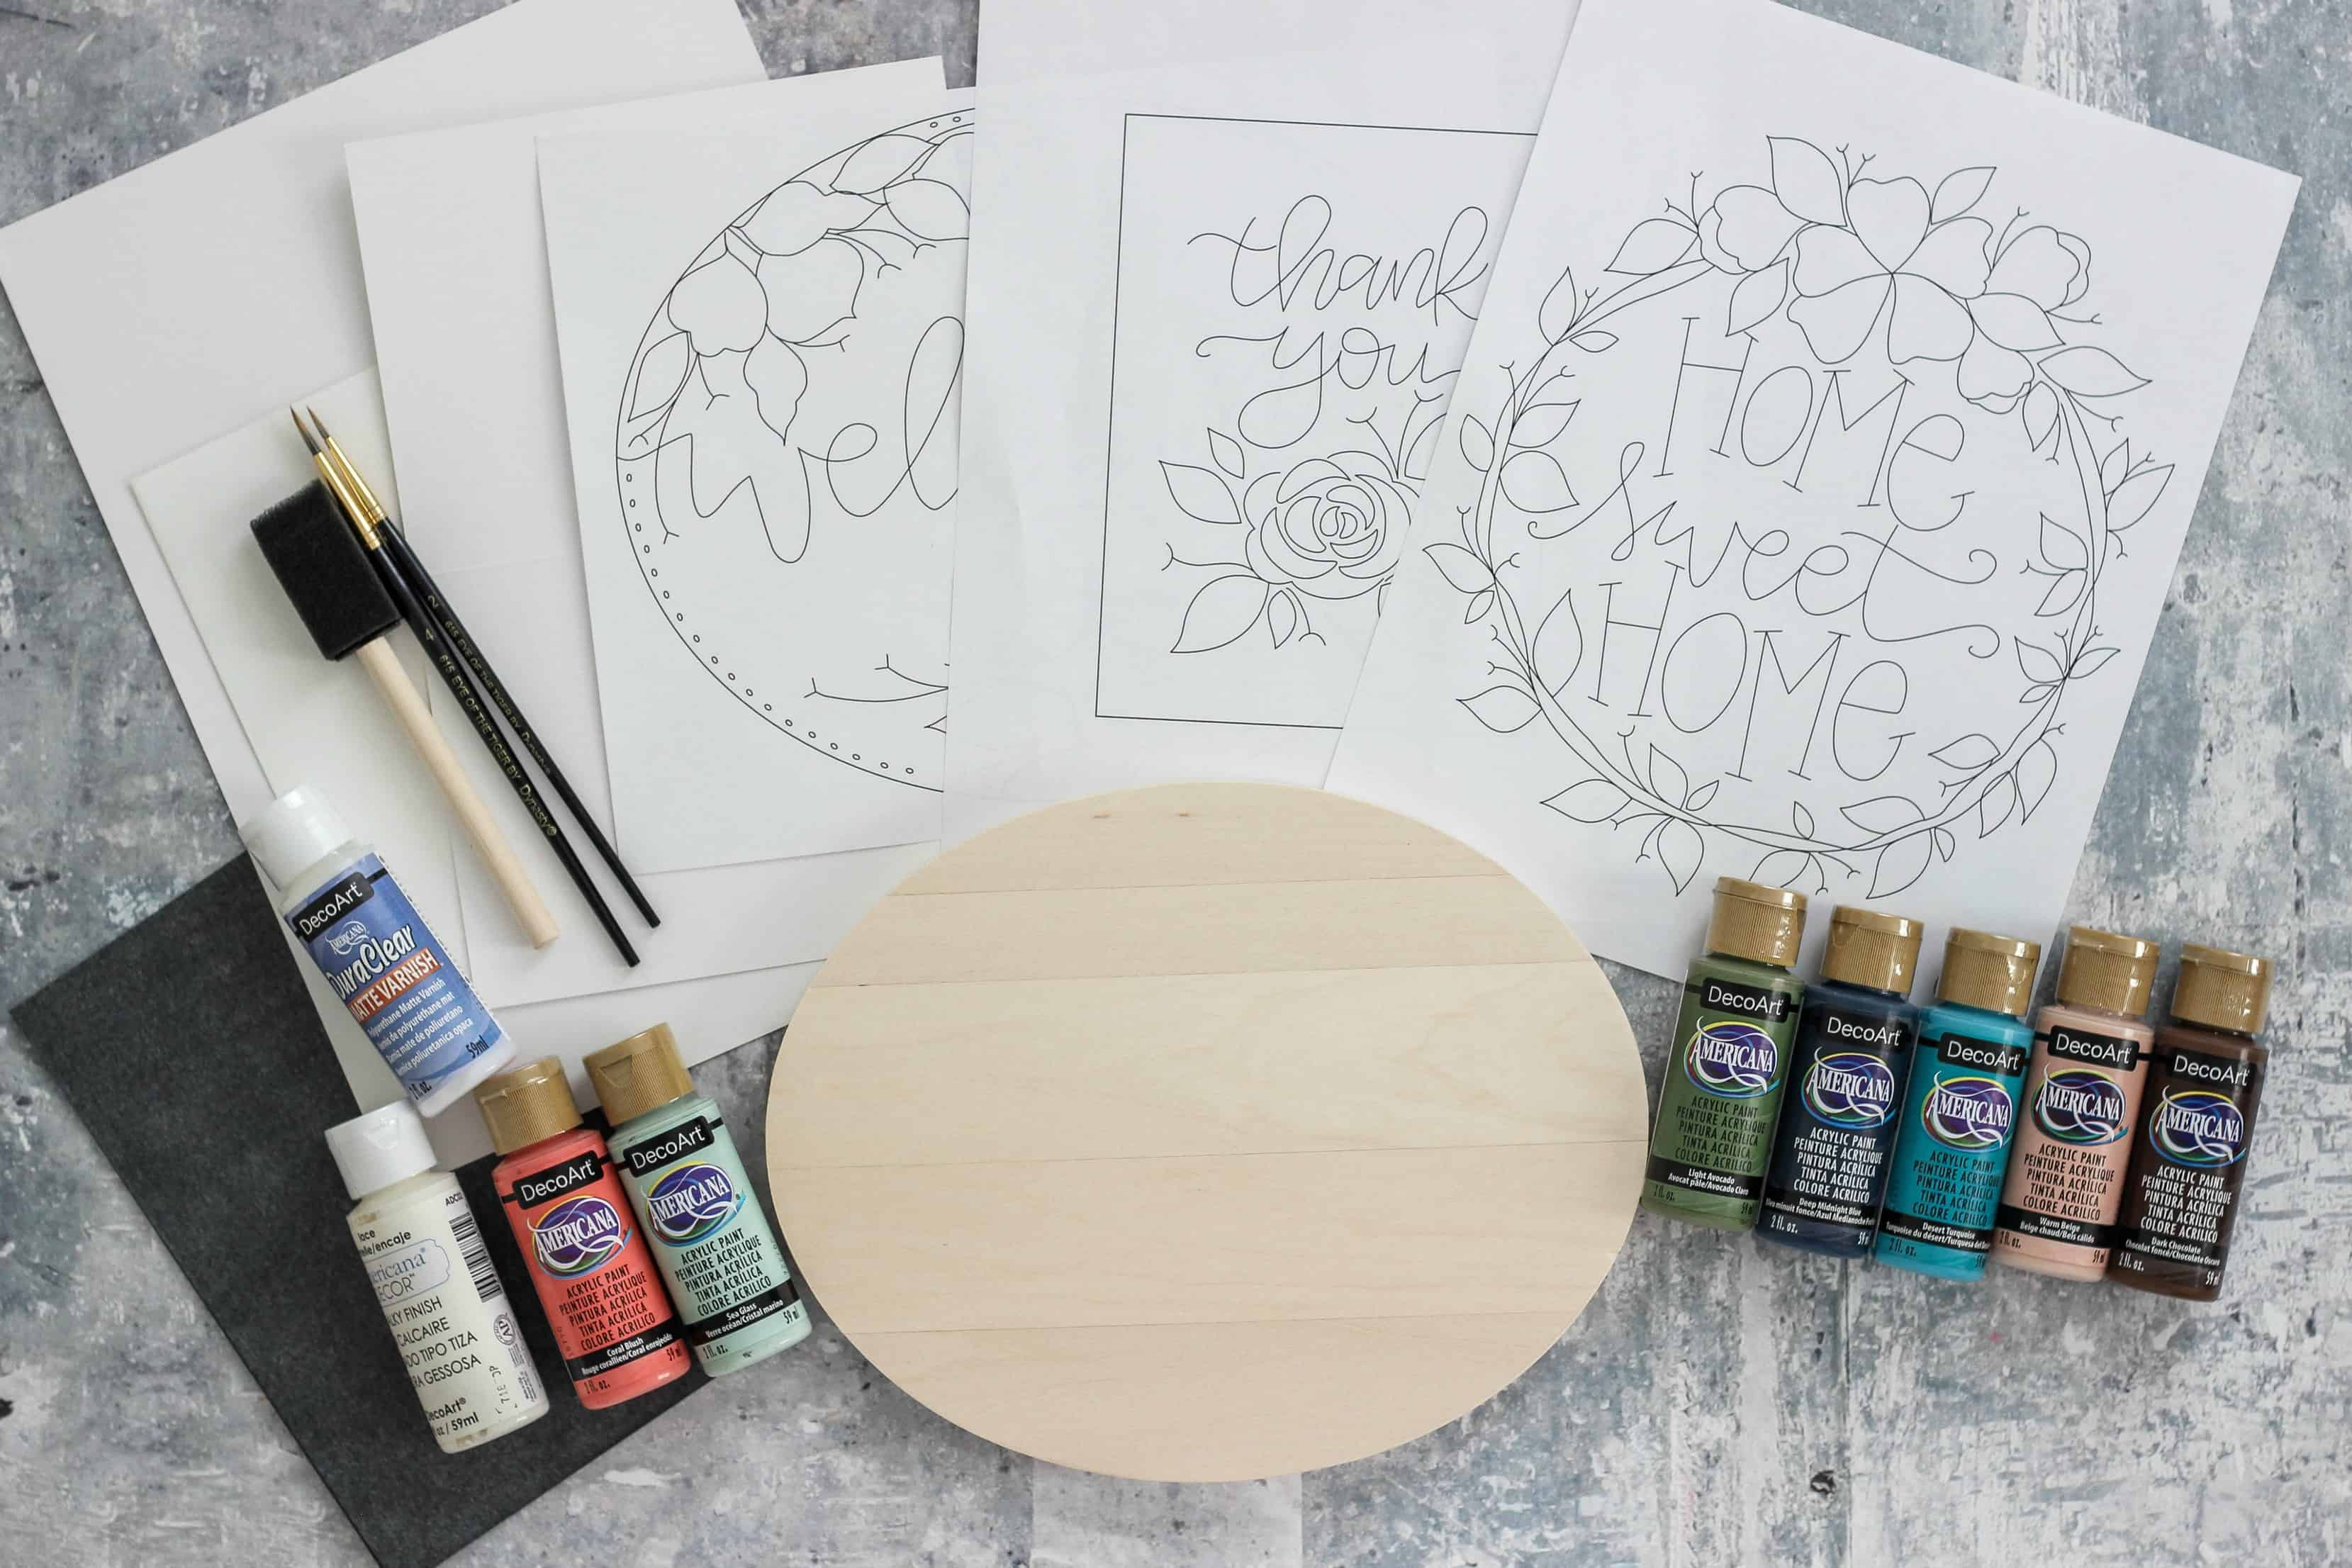 Learn to paint online with Make with Paint, a program which offers online classes for beginners who want to learn to paint. #MakewithPaint #decoartprojects